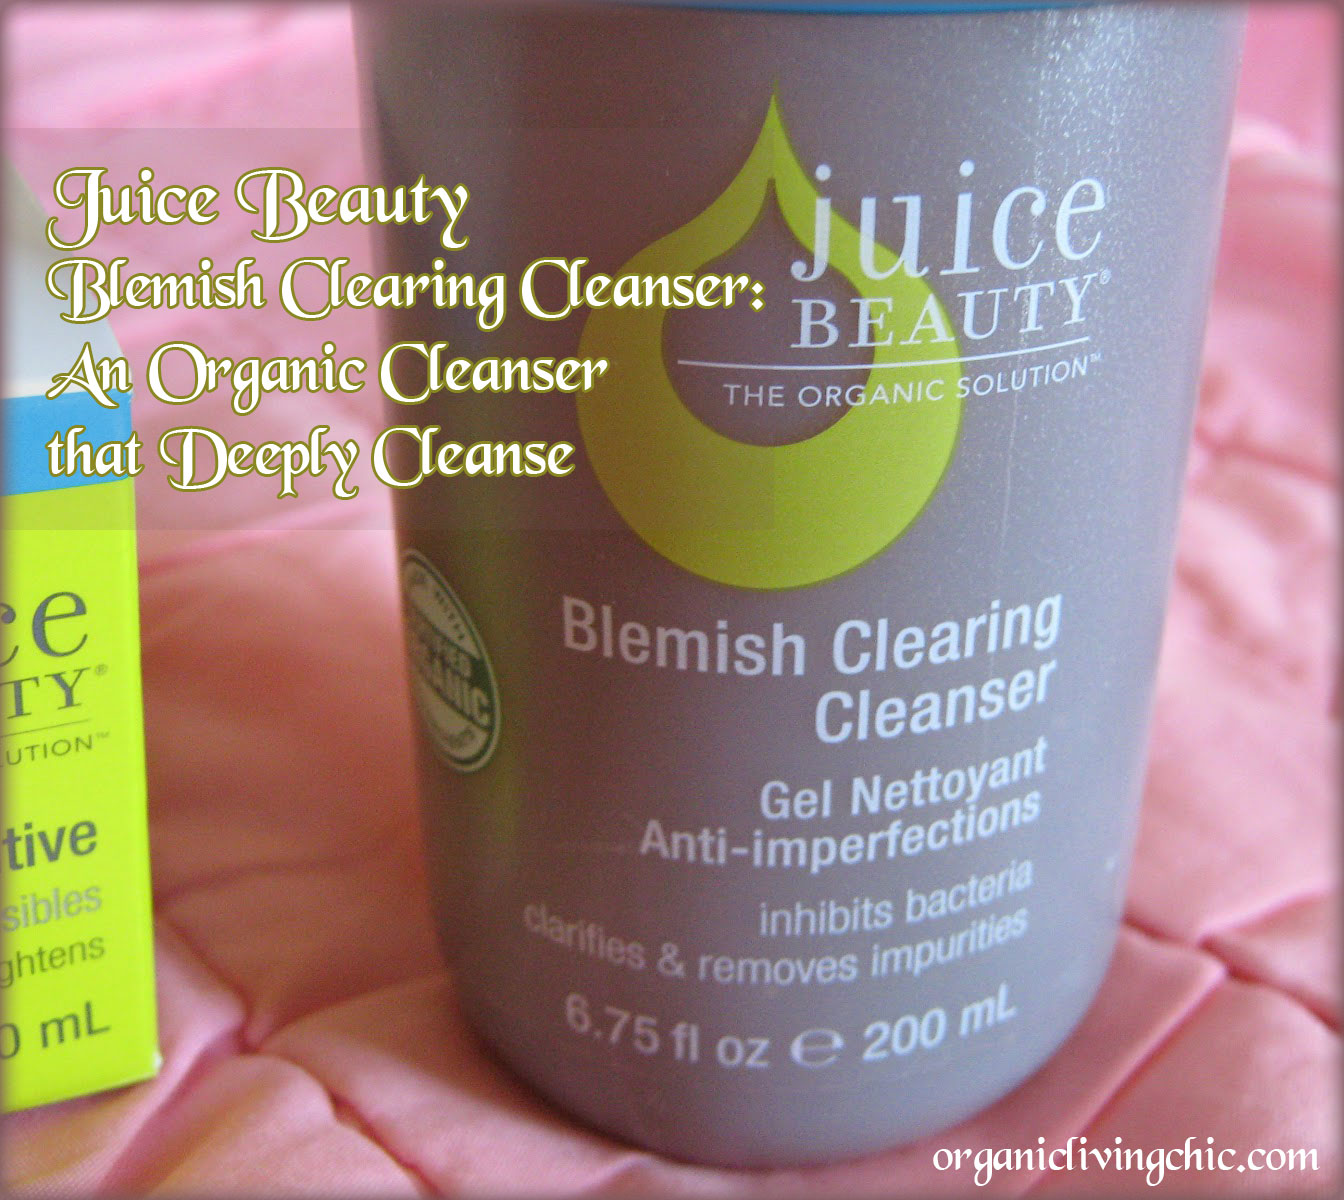 juicebeauty, juice beauty, juice beauty reviews, juice beauty blemish clearing cleanser, organic beauty products, blemish skin, organic beauty, juice beauty cleanser, juice beauty blemish clearing cleanser review, clearskin blemish clearing